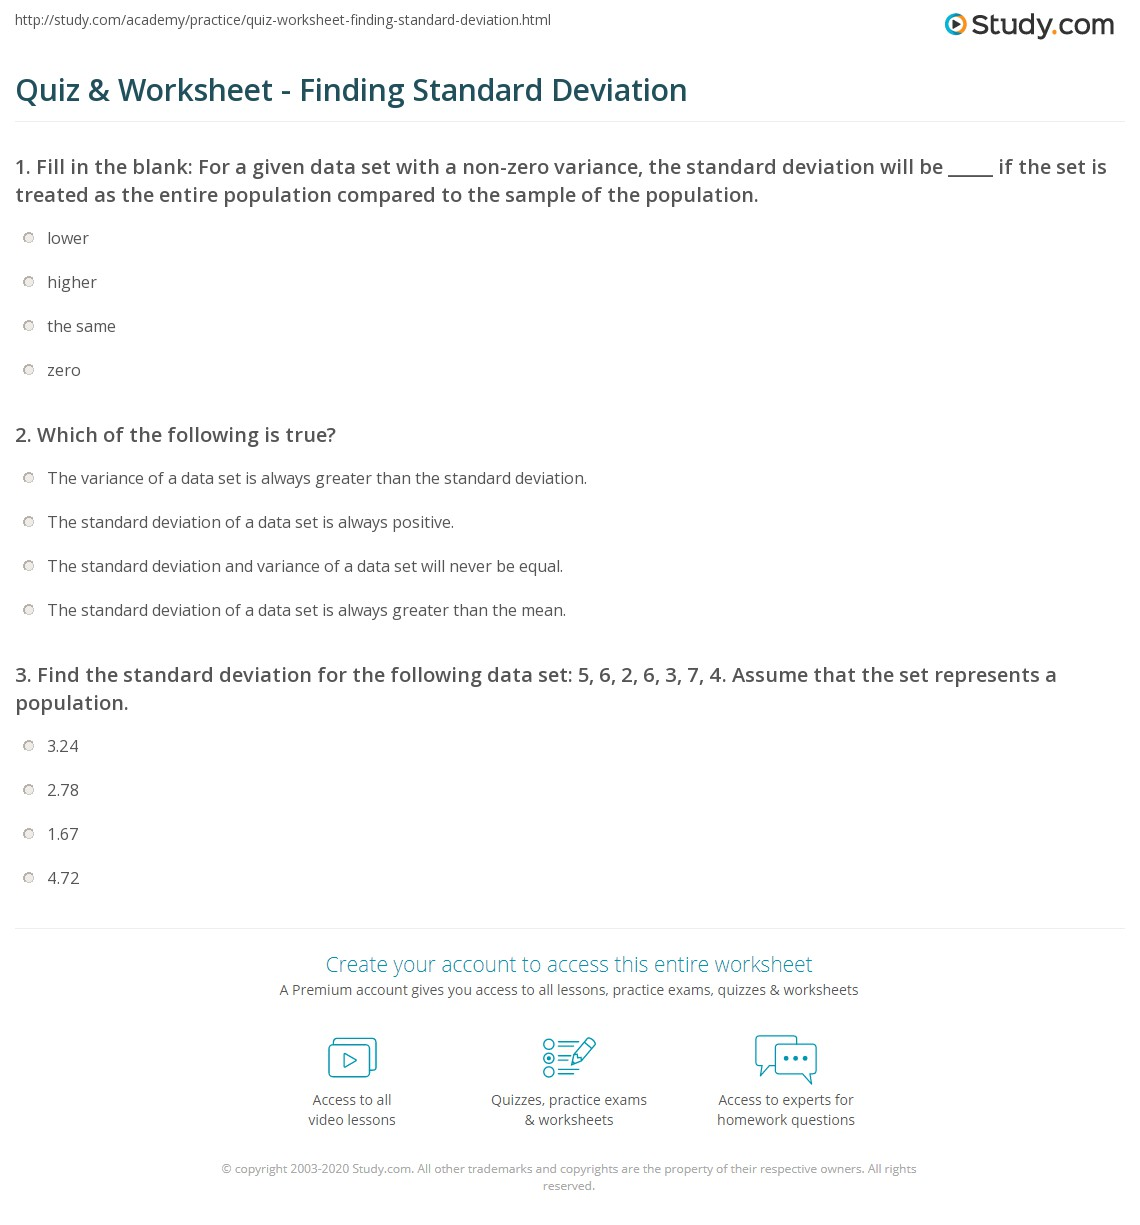 Mean Median Mode Worksheets Range And Standard Deviation Worksheet in addition Mean Absolute Deviation Worksheet Luxury Collection Of Math Freshman likewise standard deviation graph maker – Nested Multiplication additionally Mean Median Mode Range Worksheets Math Alge 1 further Standard and Absolute Deviation Worksheets also Mean And Standard Deviation Distribution Independent Practice furthermore Mean Median Mode And Range Worksheets Standard Deviation Worksheet likewise standard deviation calculator with work Archives   Briefencounters likewise Printables  Standard Deviation Worksheet With Answers additionally Variance And Standard Deviation Worksheet The best worksheets image moreover  further Standard Deviation Worksheet with Answers Luxury Percentage additionally Quiz   Worksheet   Finding Standard Deviation   Study besides  together with Standard Deviation Worksheets Stay on Standard Deviation Lesson Pl likewise Standard Deviation Worksheet   Calculate the standard deviation of. on standard deviation worksheet with answers